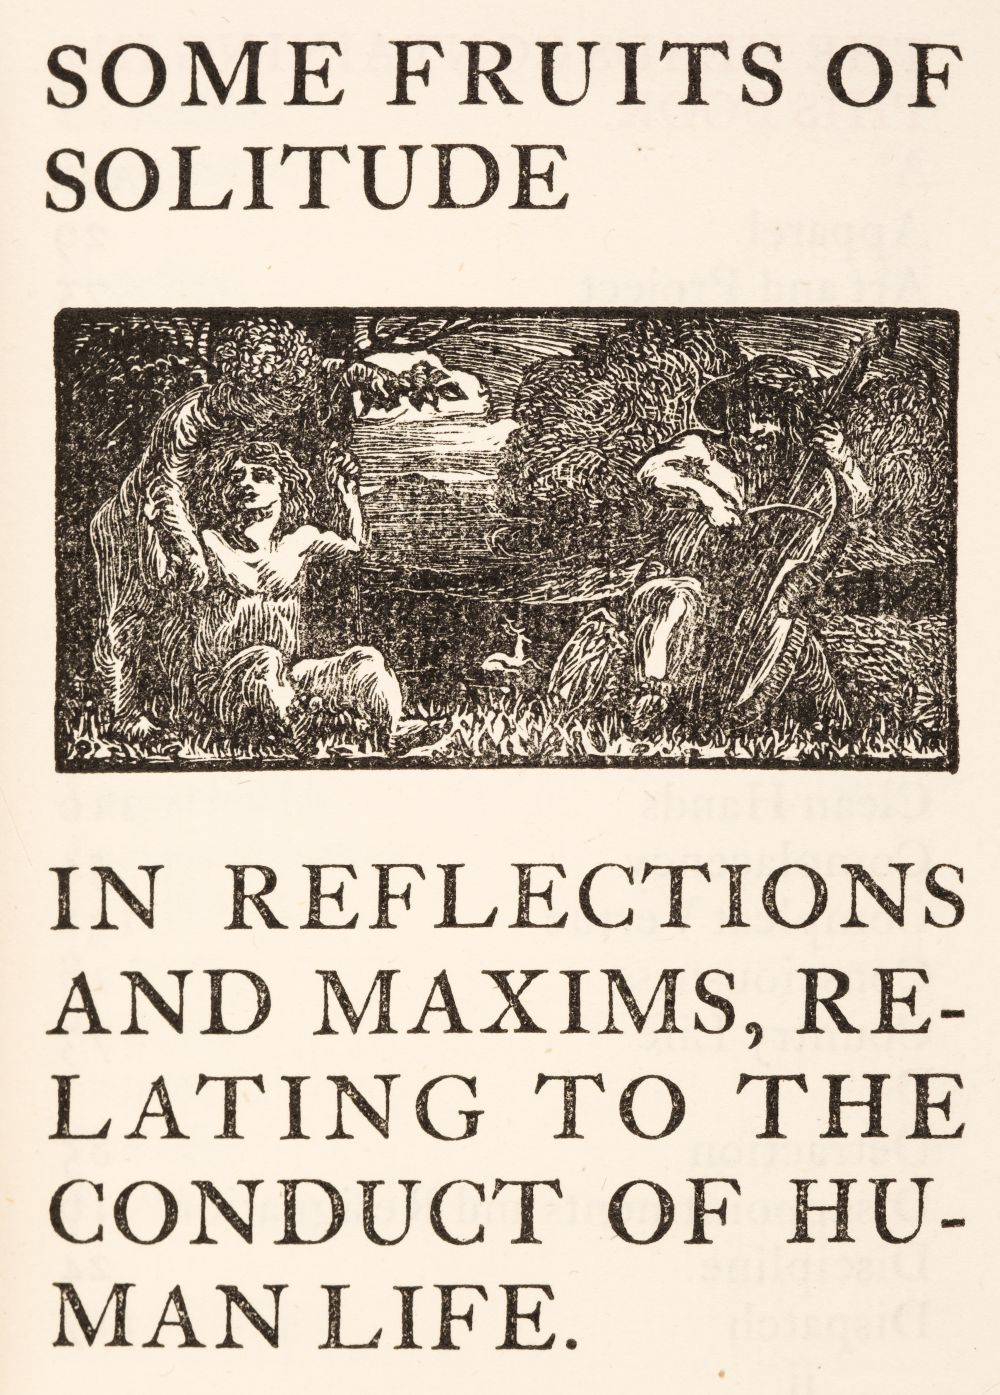 Essex House Press. Some Fruits of Solitude in Reflections and Maxims, 1901 - Image 2 of 2